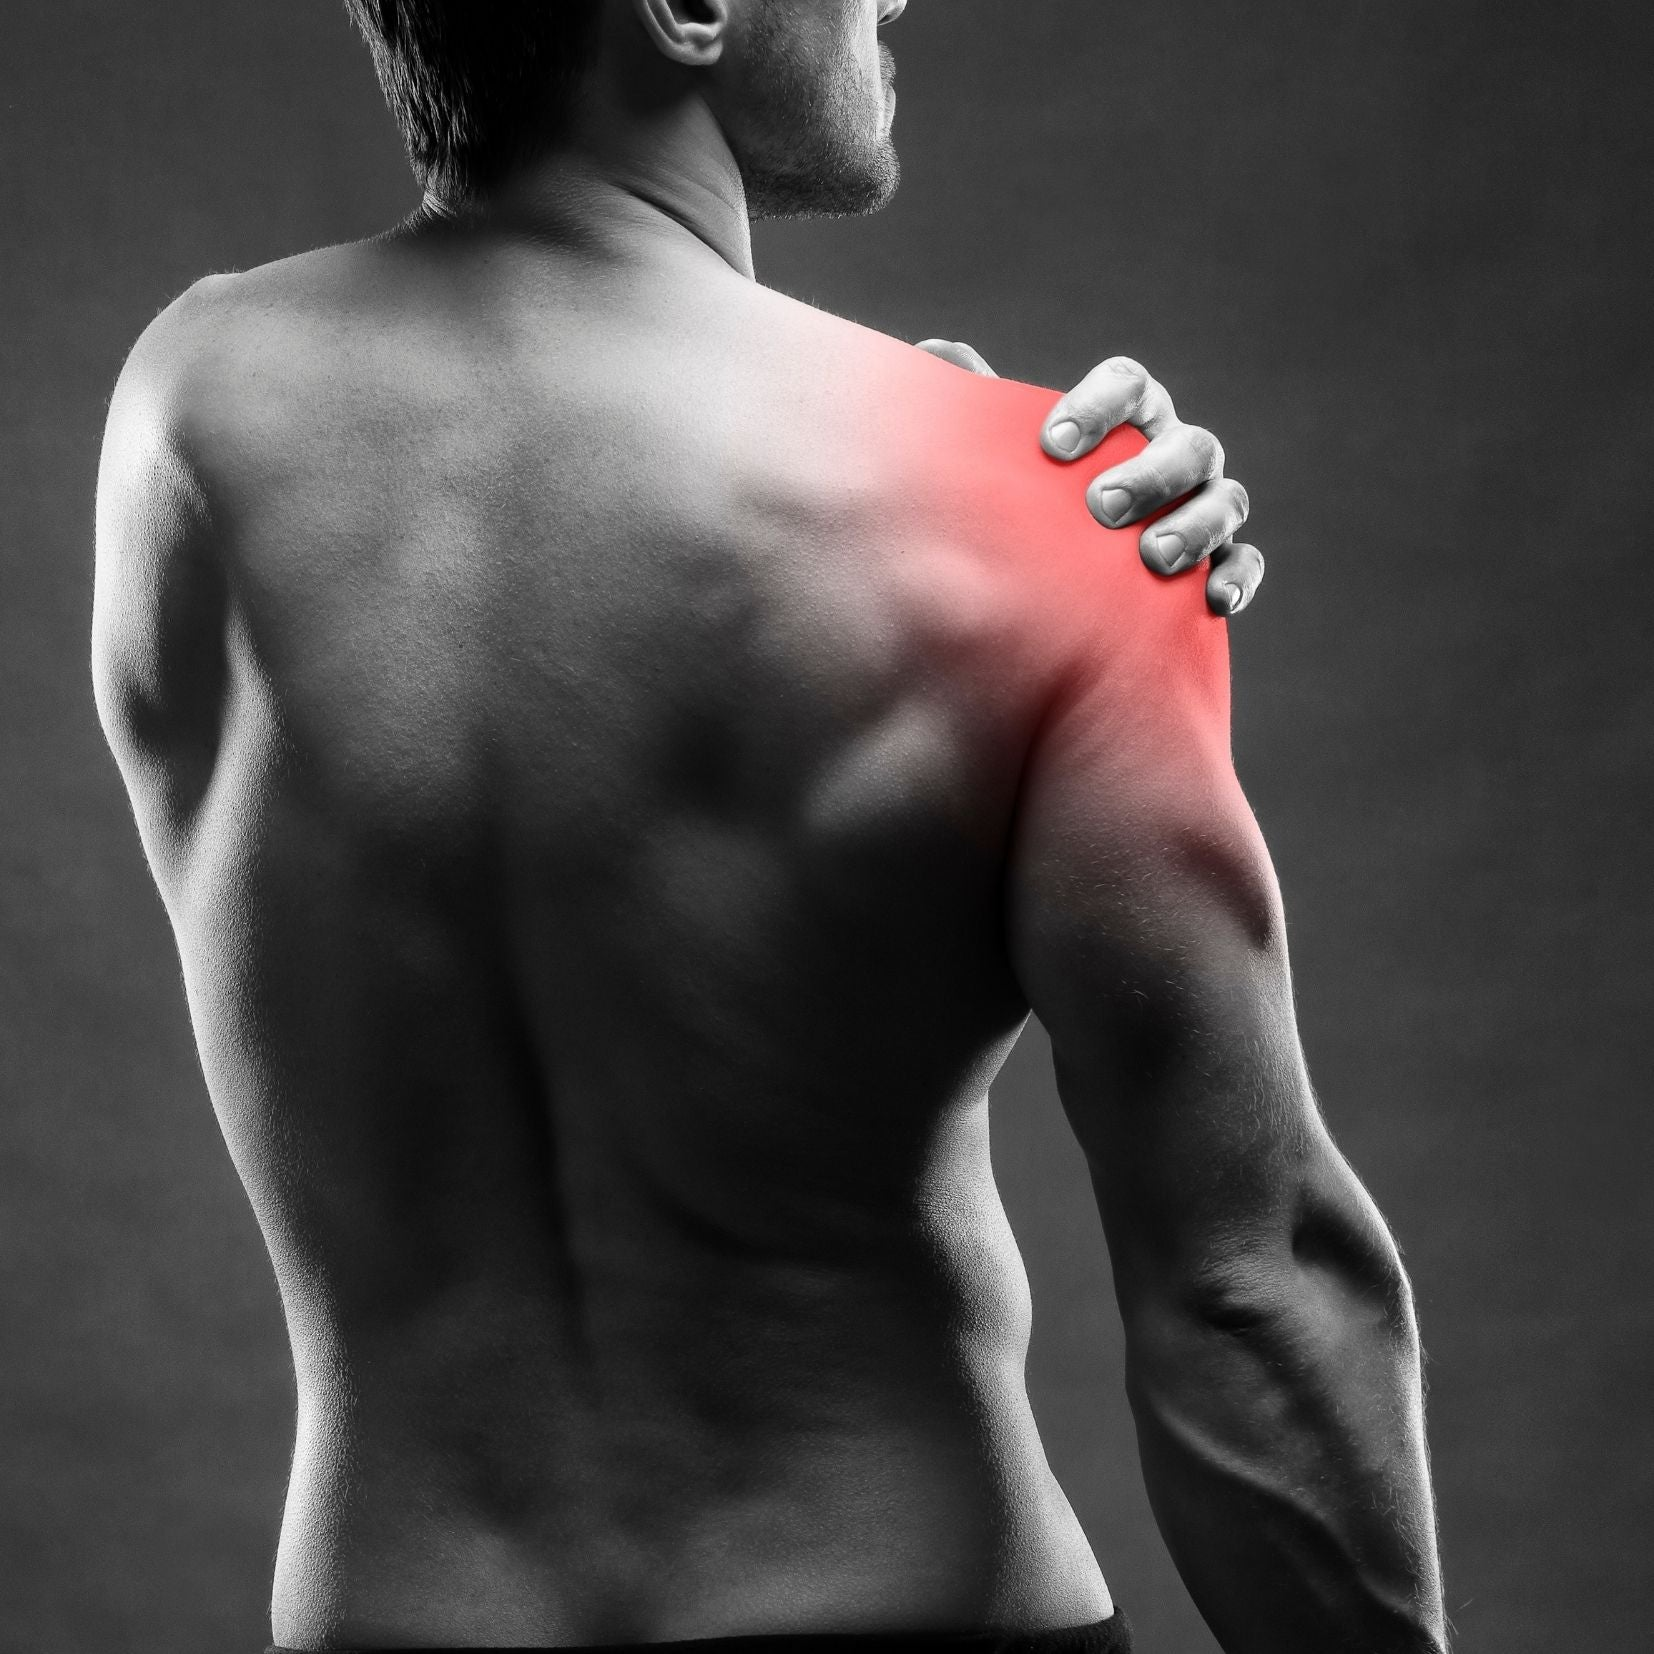 How to Sleep With Shoulder Pain?